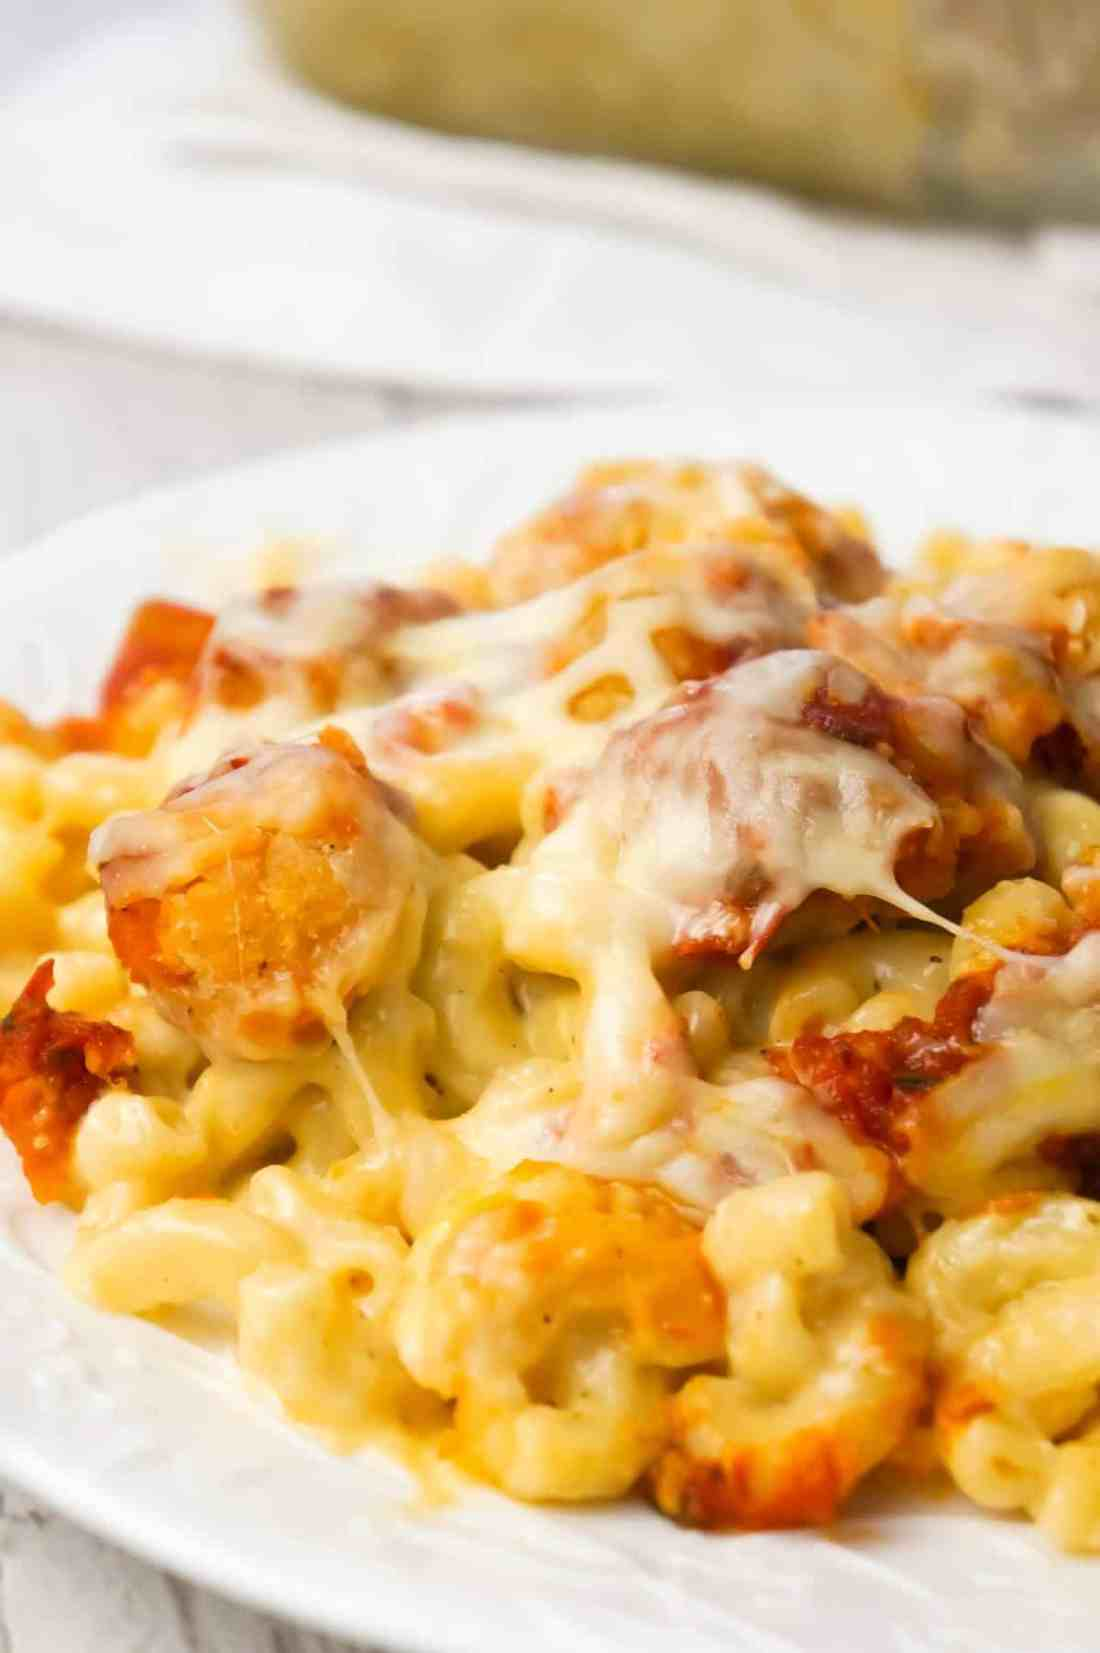 Chicken Parmesan Mac and Cheese is a hearty baked pasta recipe with a base of macaroni and cheese topped with popcorn chicken, marinara sauce and mozzarella cheese.